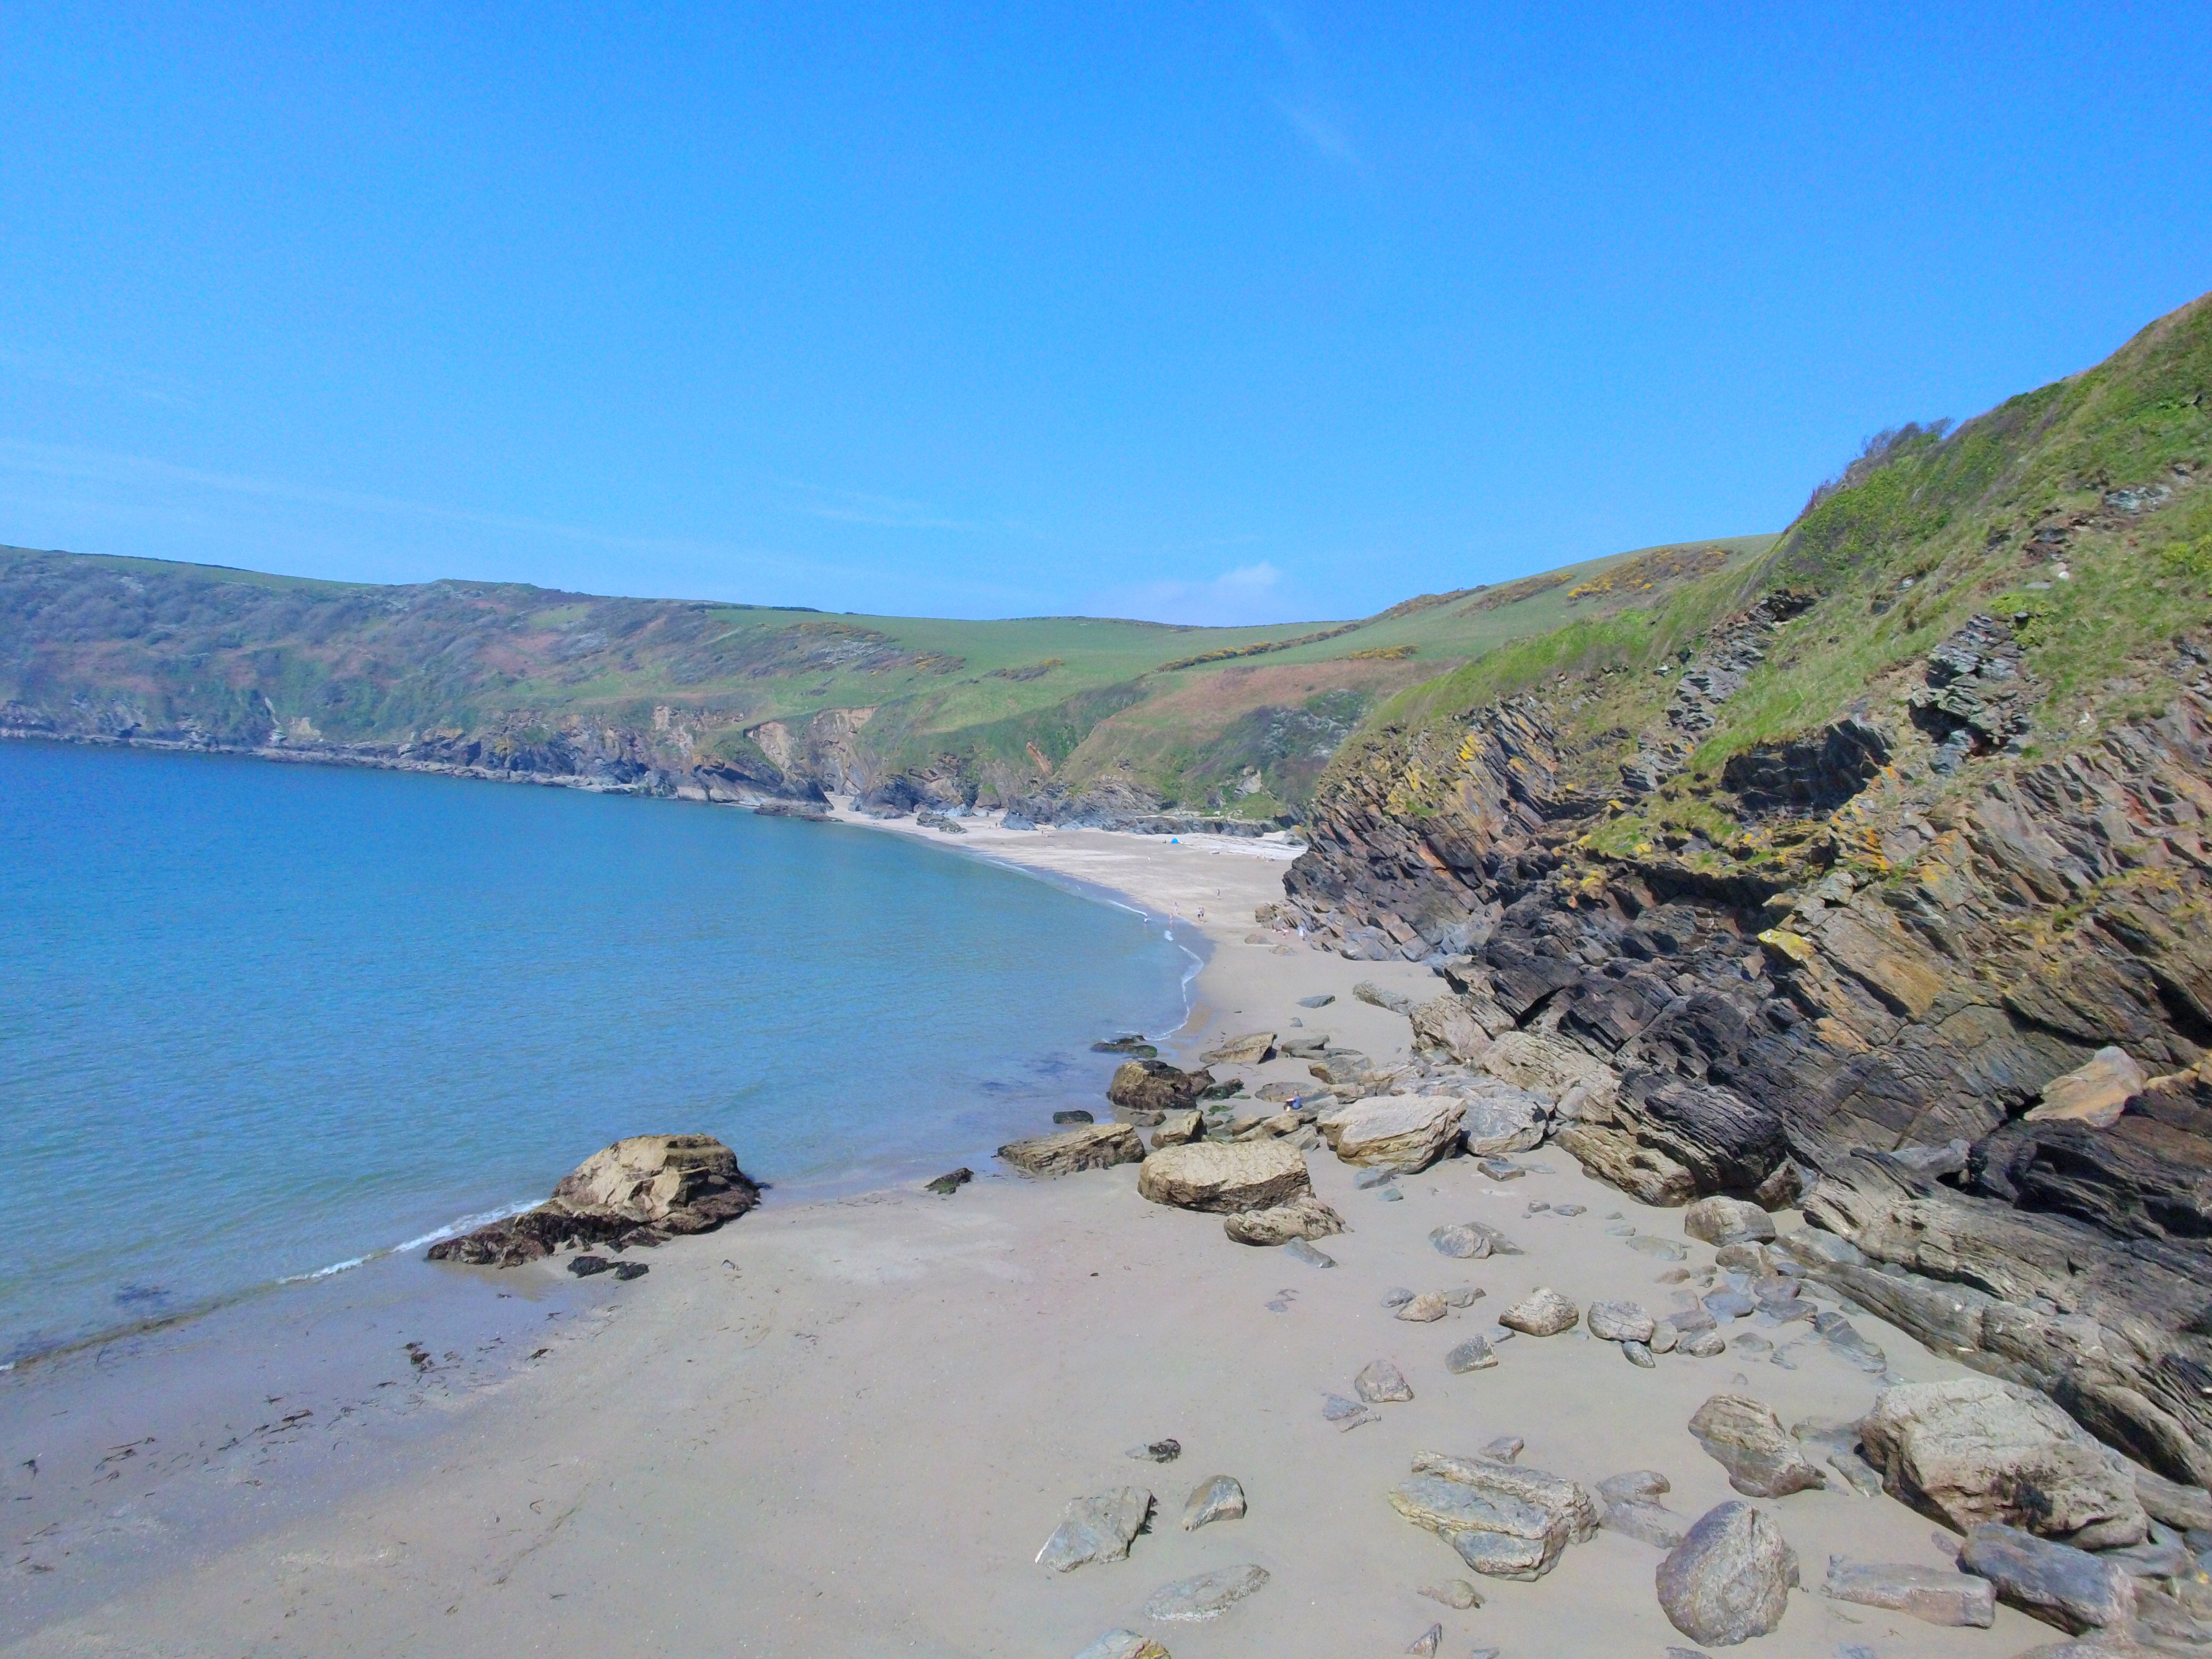 drone view of Lantic Bay